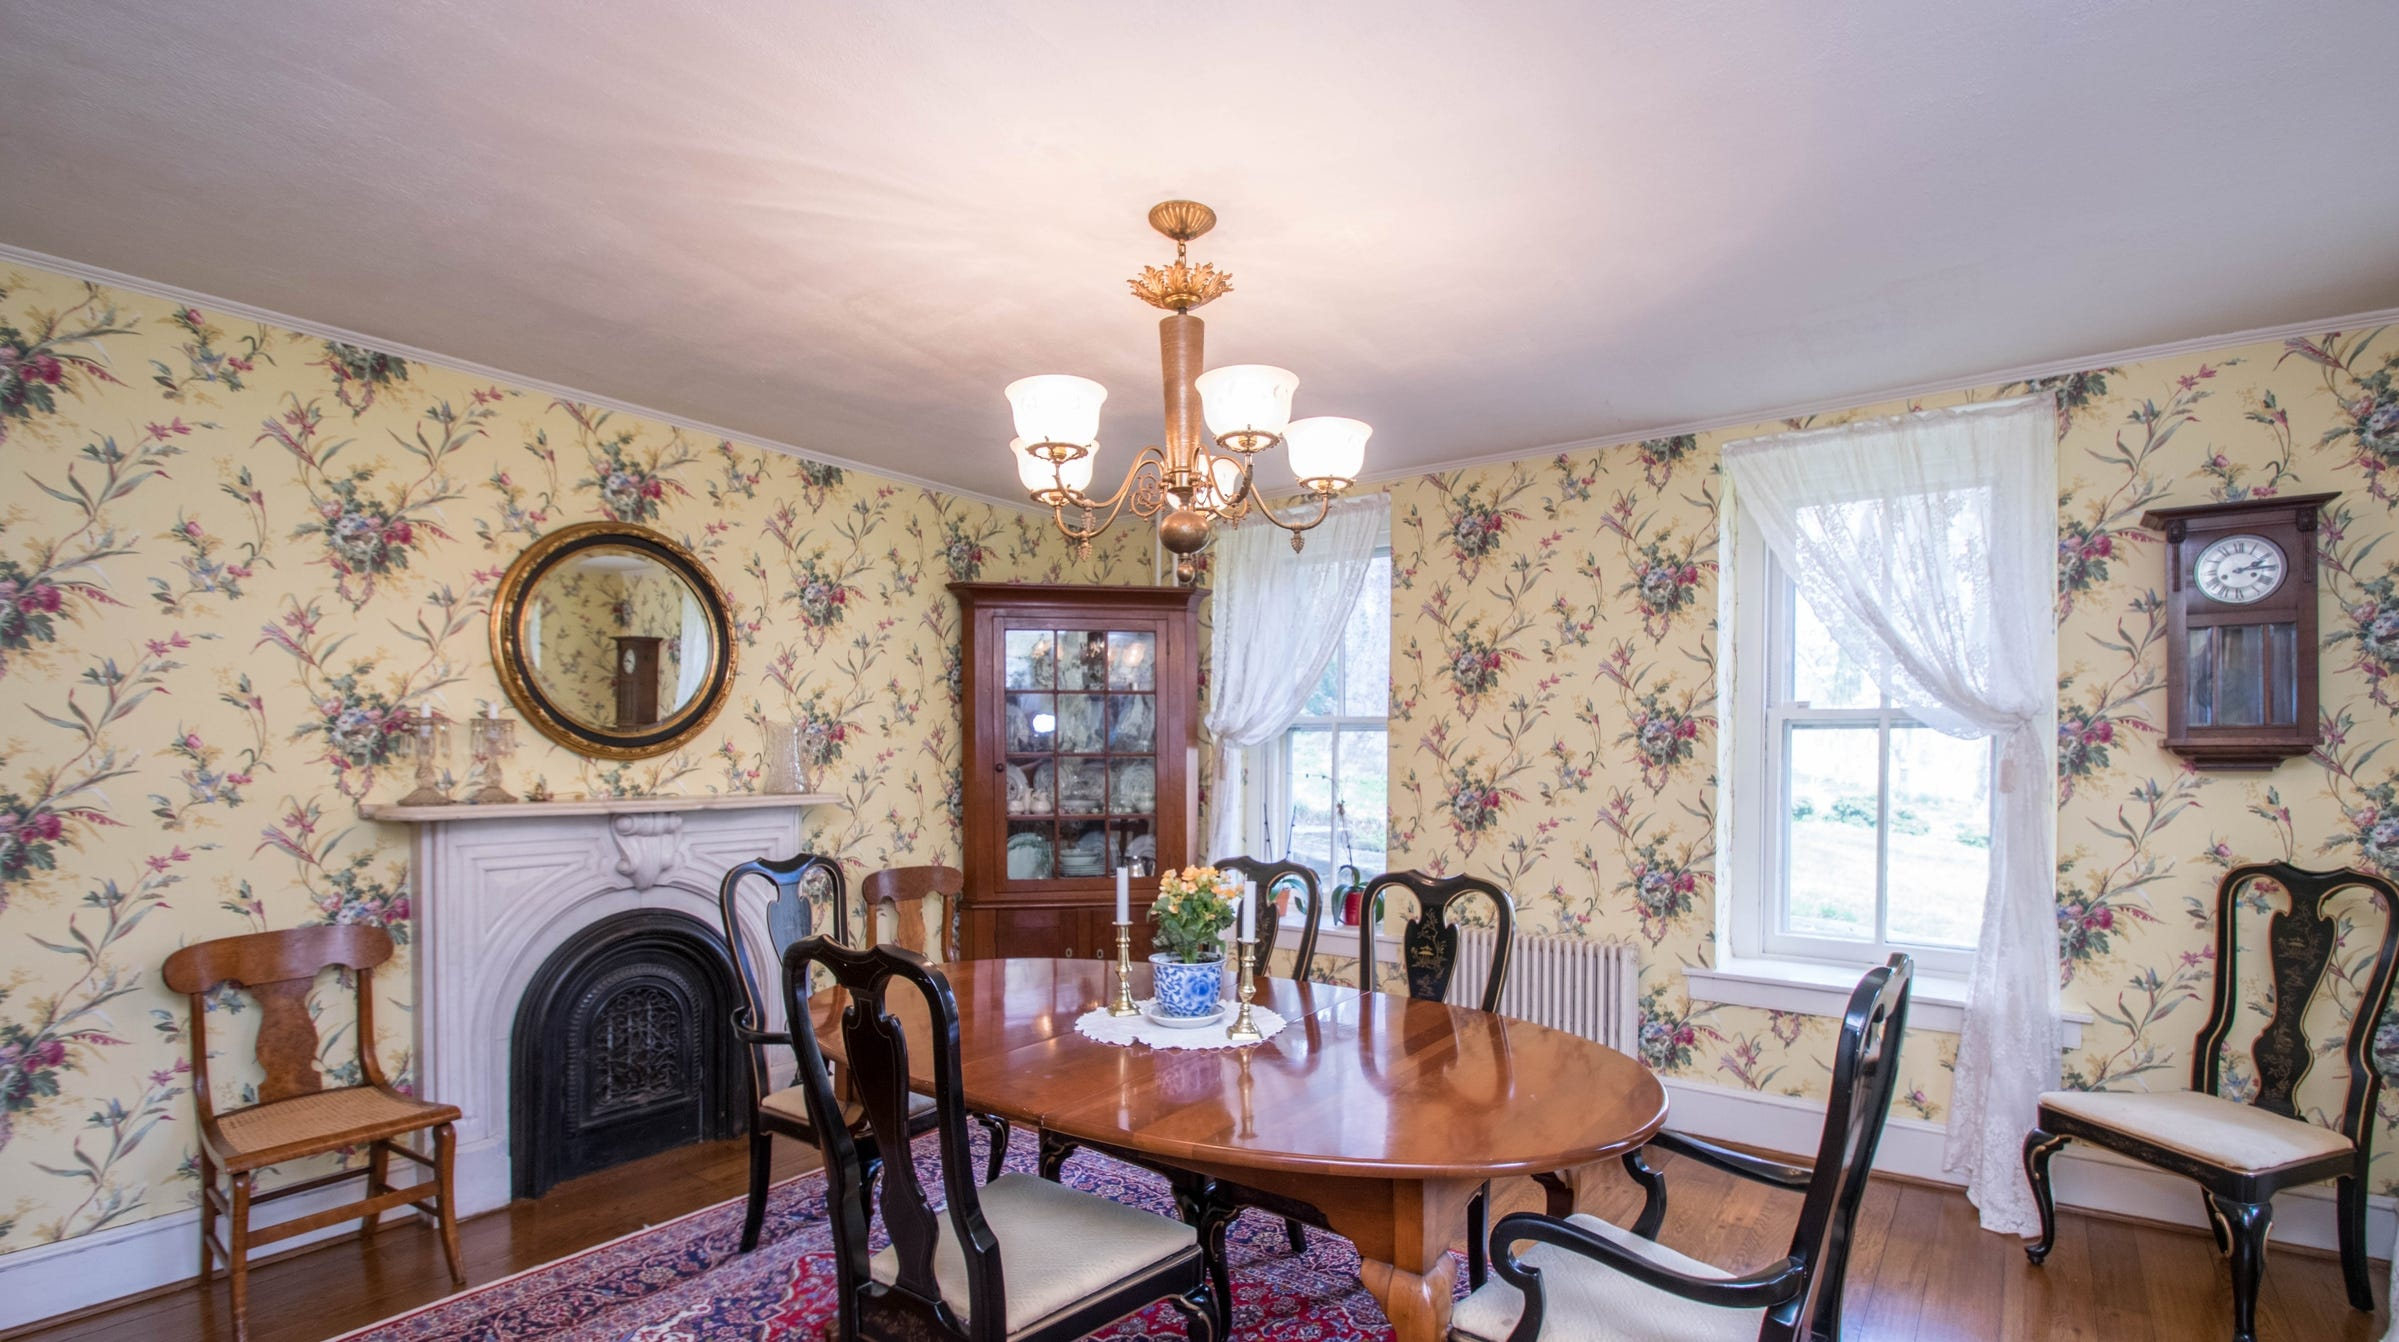 There's a trapdoor, believed to have been used in the Underground Railroad, under the table in the formal dining room at 3003 Faulkland Road.